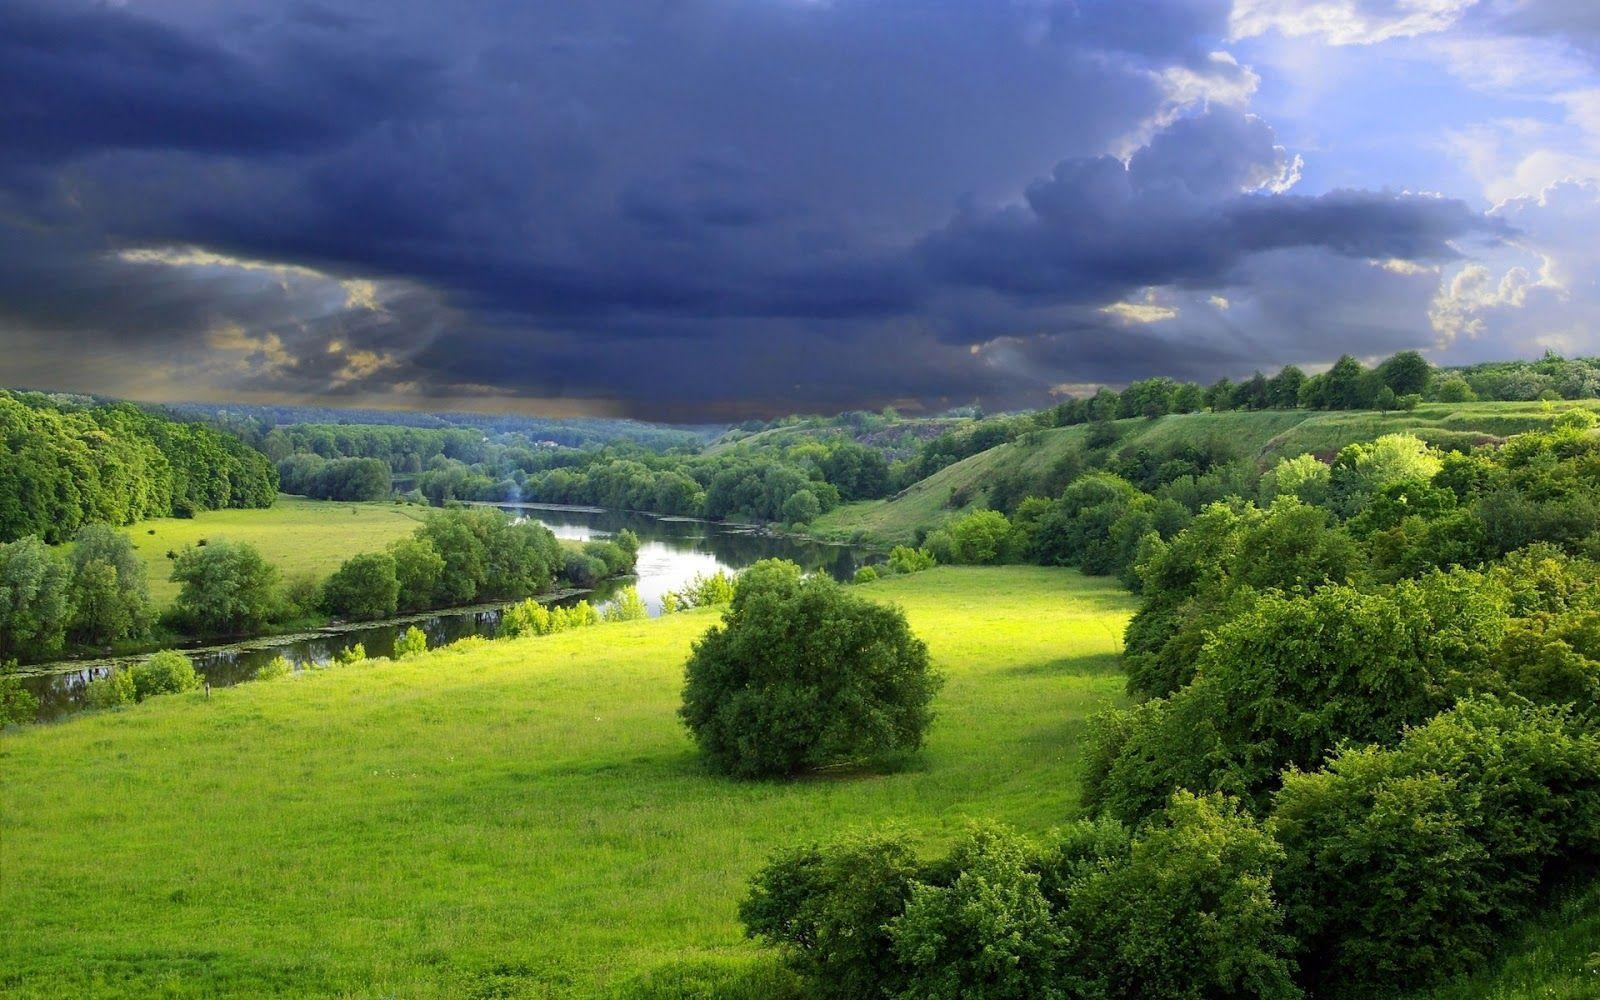 Full Hd 3D Nature Wallpaper Pictures 5 HD Wallpapers | Natureimgz.